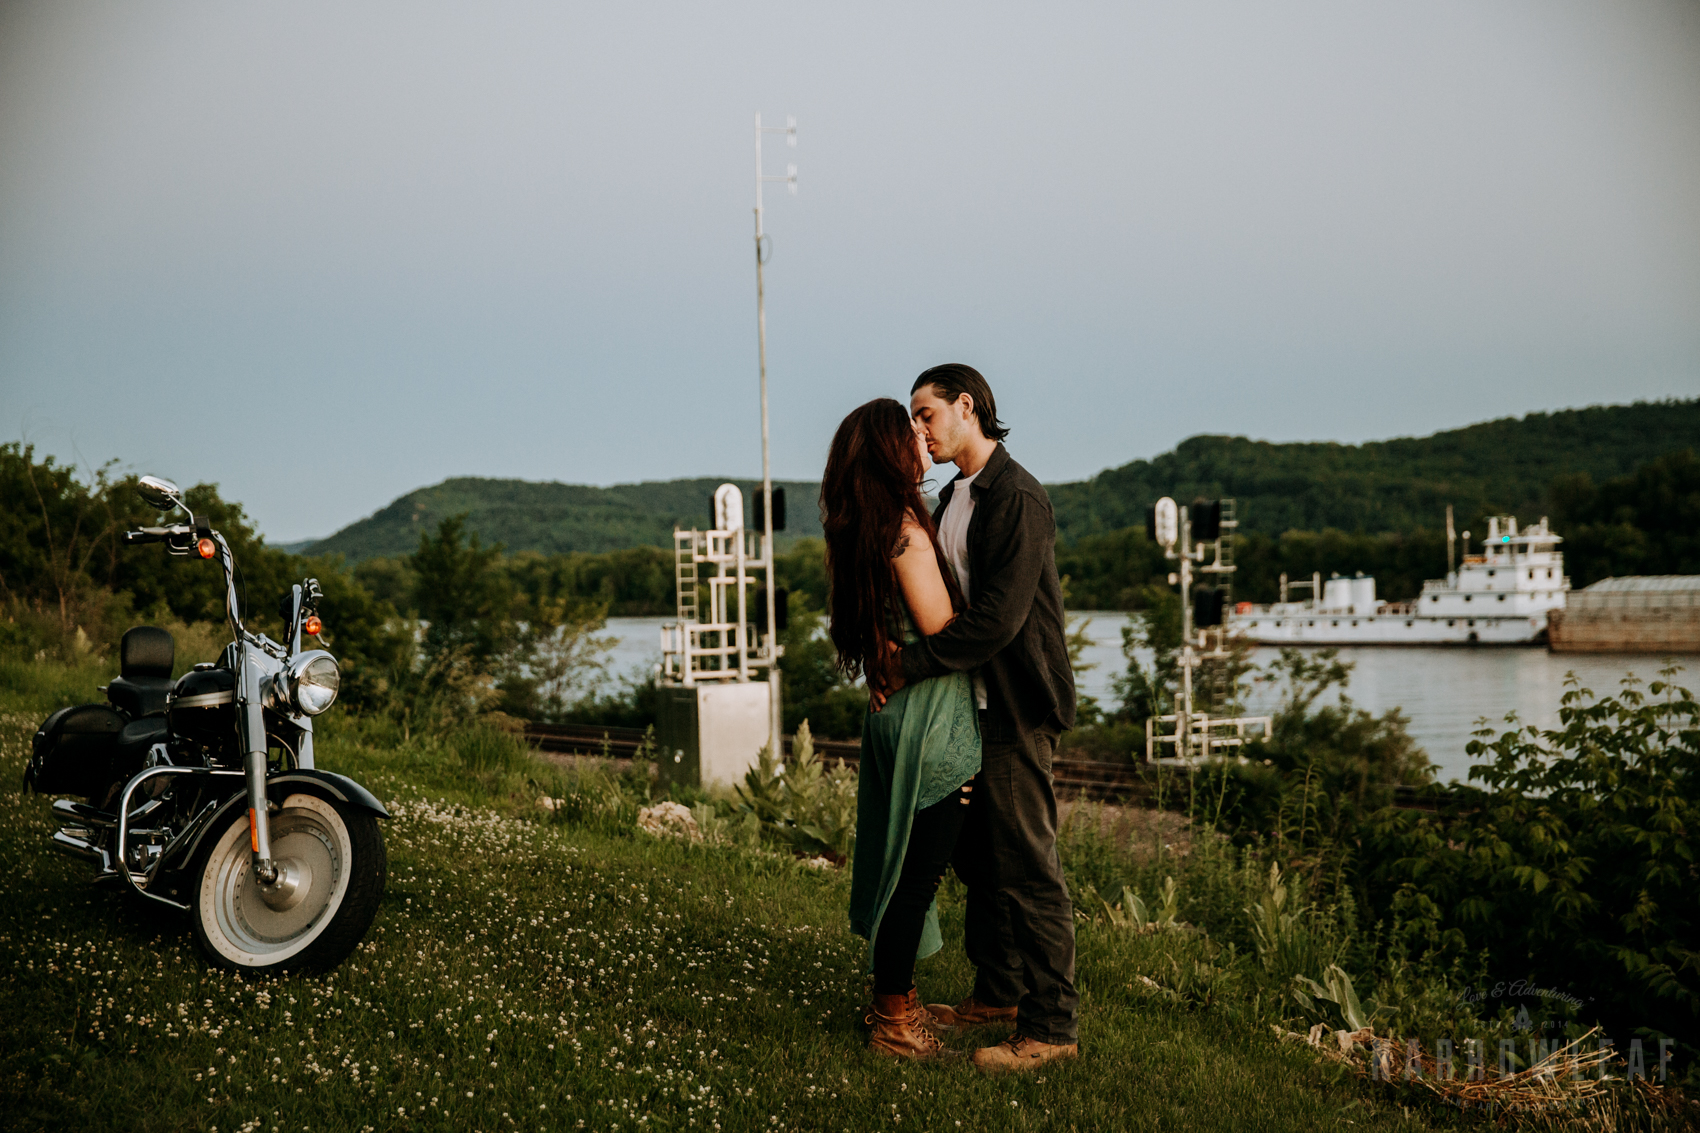 Trempealeau-wi-moody-engagement-motorcycle-NarrowLeaf-love-and-adventure-Photography-11.jpg